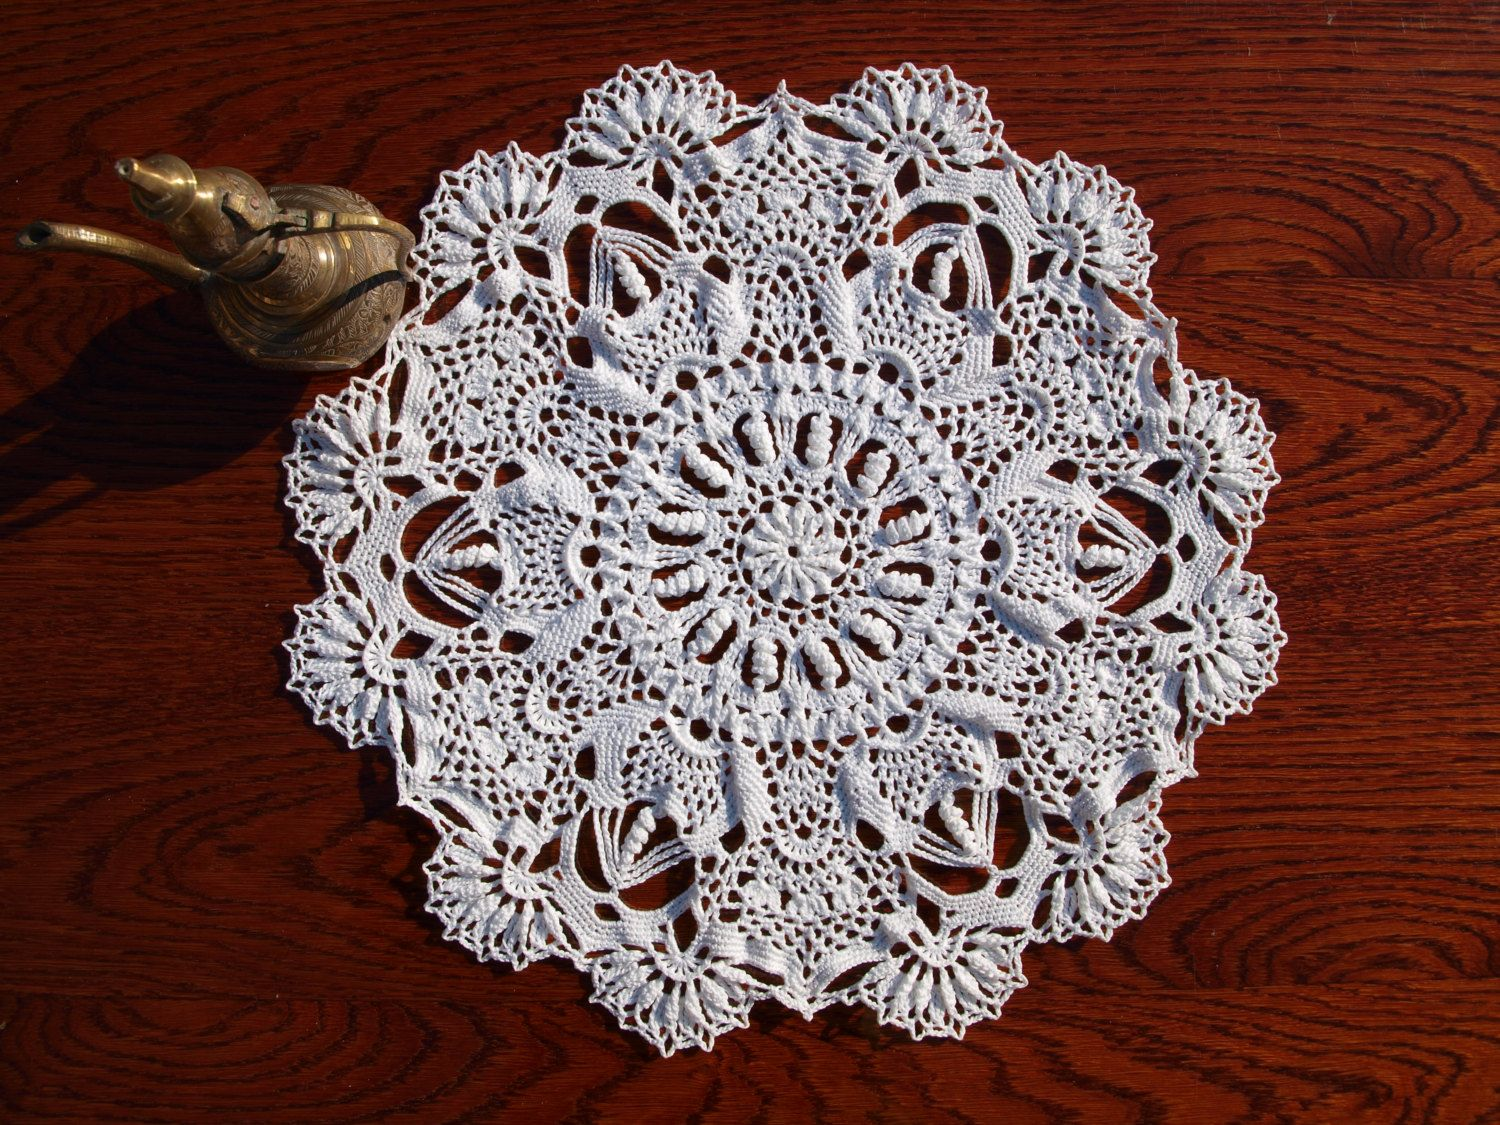 crochet hand made doily inches diameter lace white round victorian accent table home decor style doilies usd small furniture for spaces espresso side pedestal clear coffee acrylic